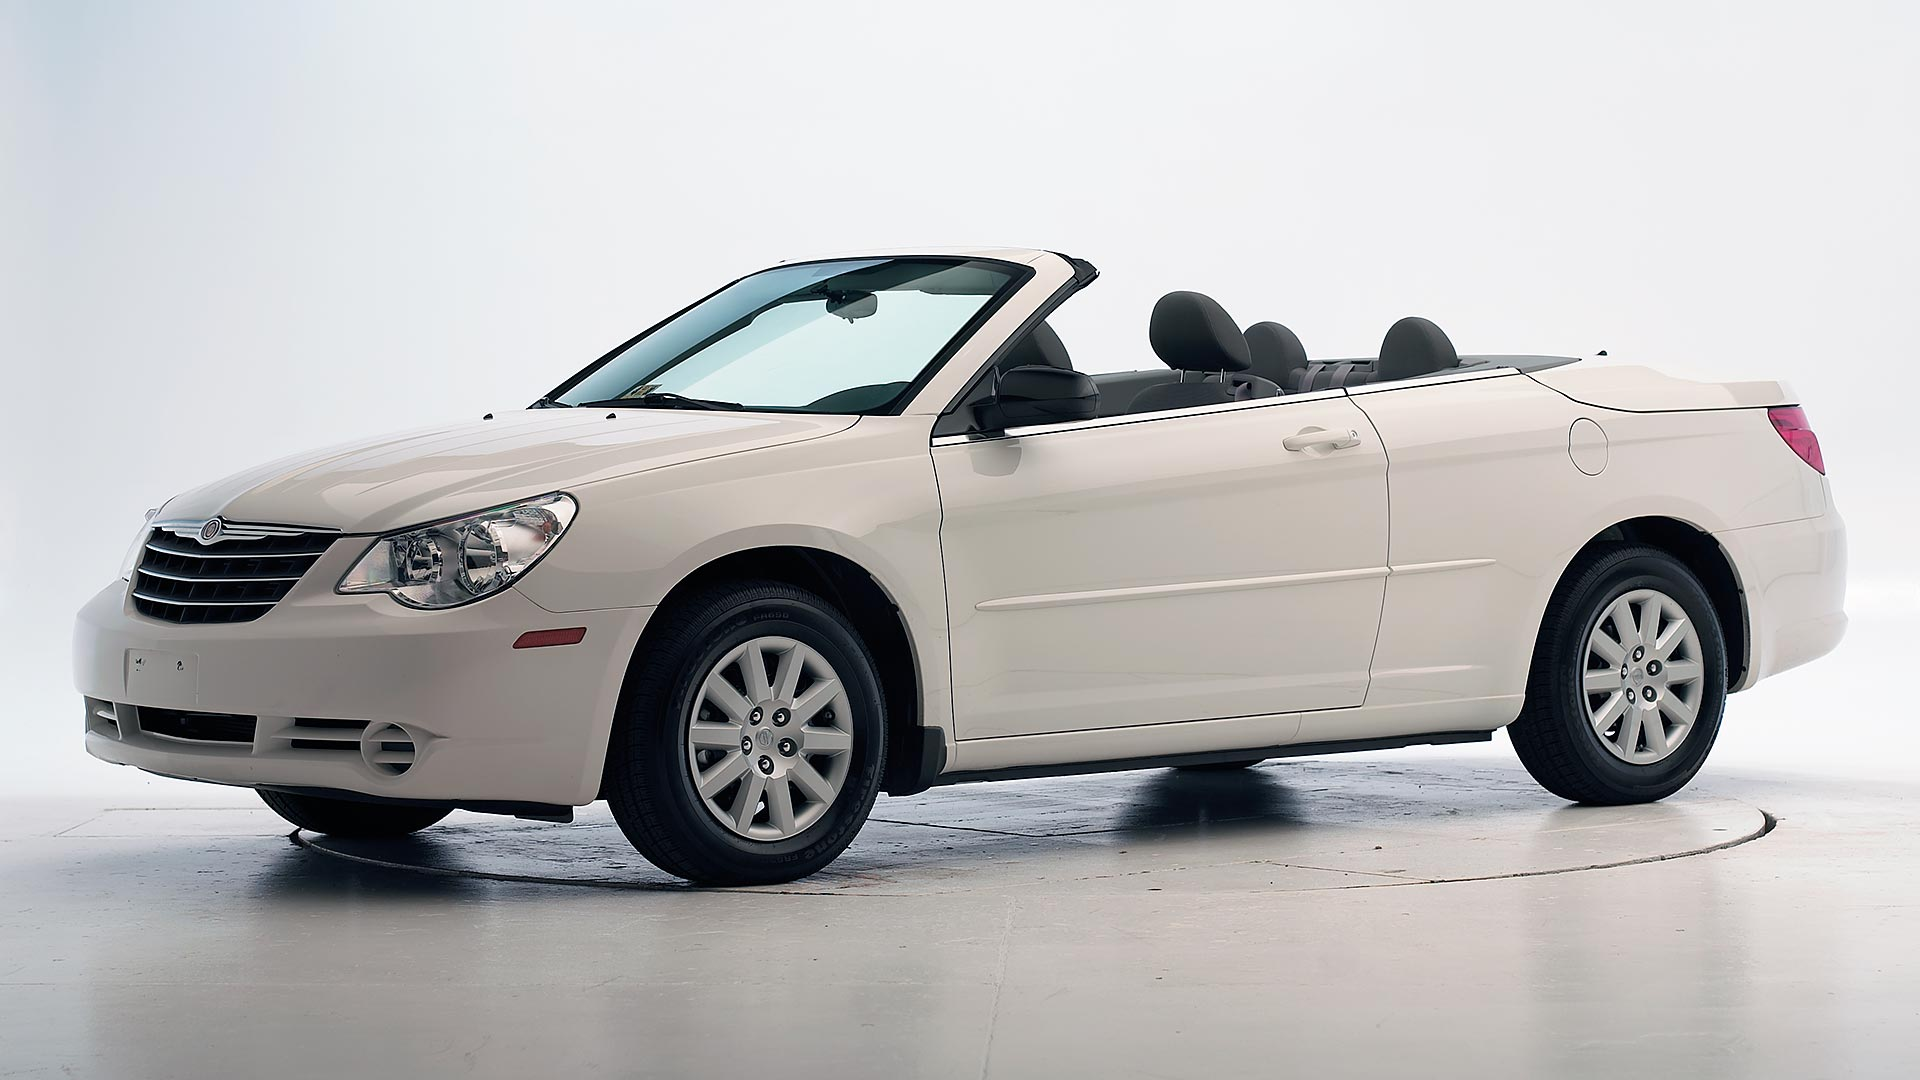 2010 Chrysler Sebring 2-door convertible